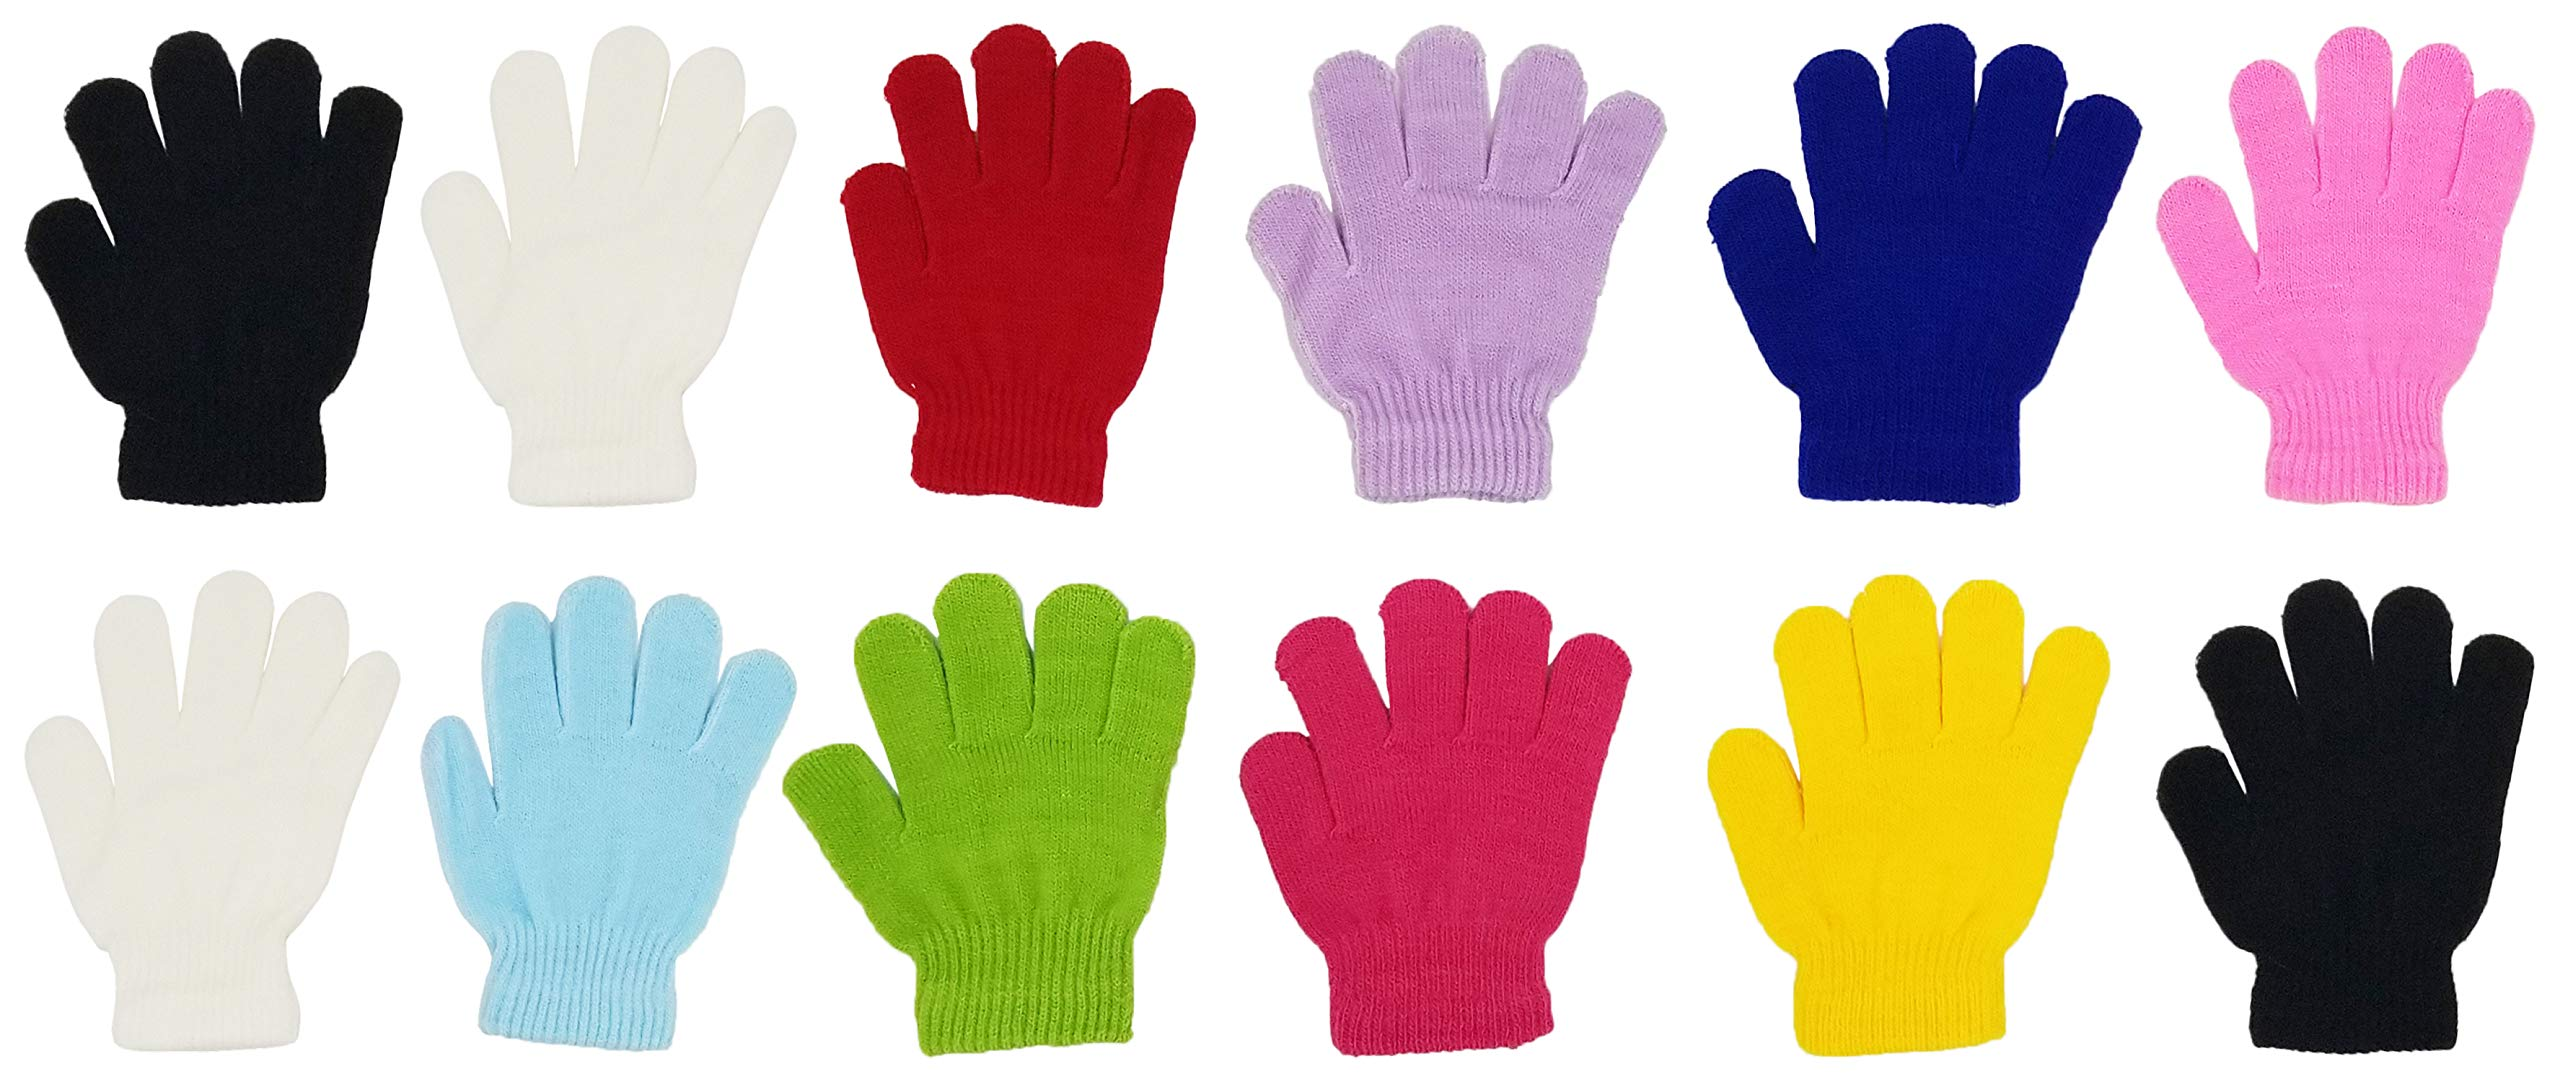 12 Pairs Winter Magic Gloves for Kids, Stretchy Warm Bulk Pack Boys Girls Children (12 Pairs Assorted Solids F)